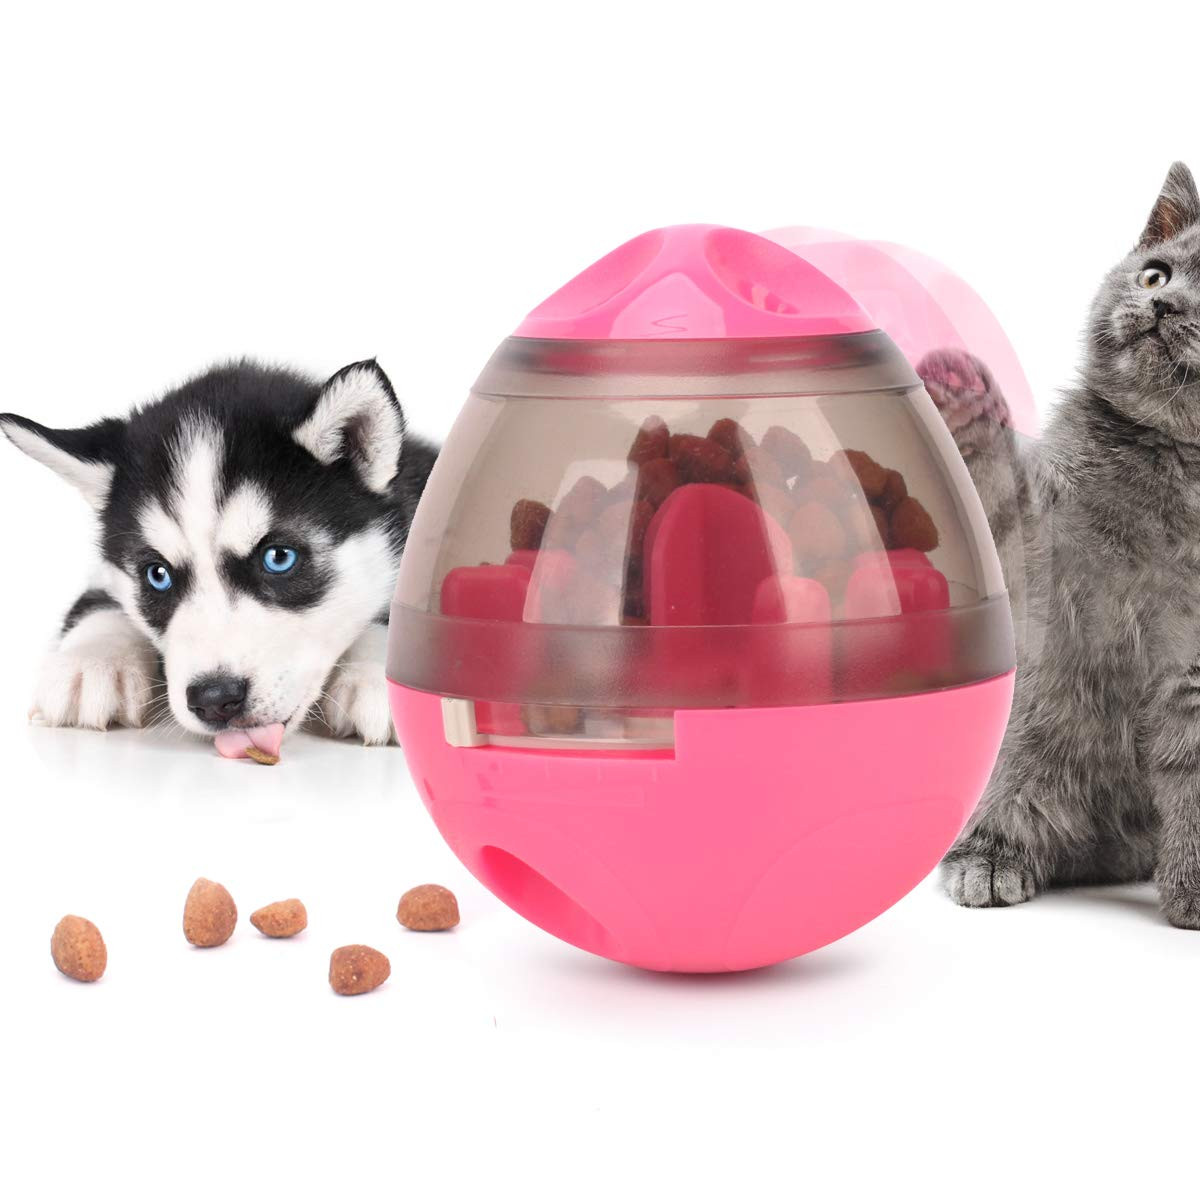 Noyal Dog Food Dispenser Ball Toy, Fun and Interactive Roly Poly Toy Ball for Small and Medium Dogs Cats Increase Attention, Tumbler Design Easy to